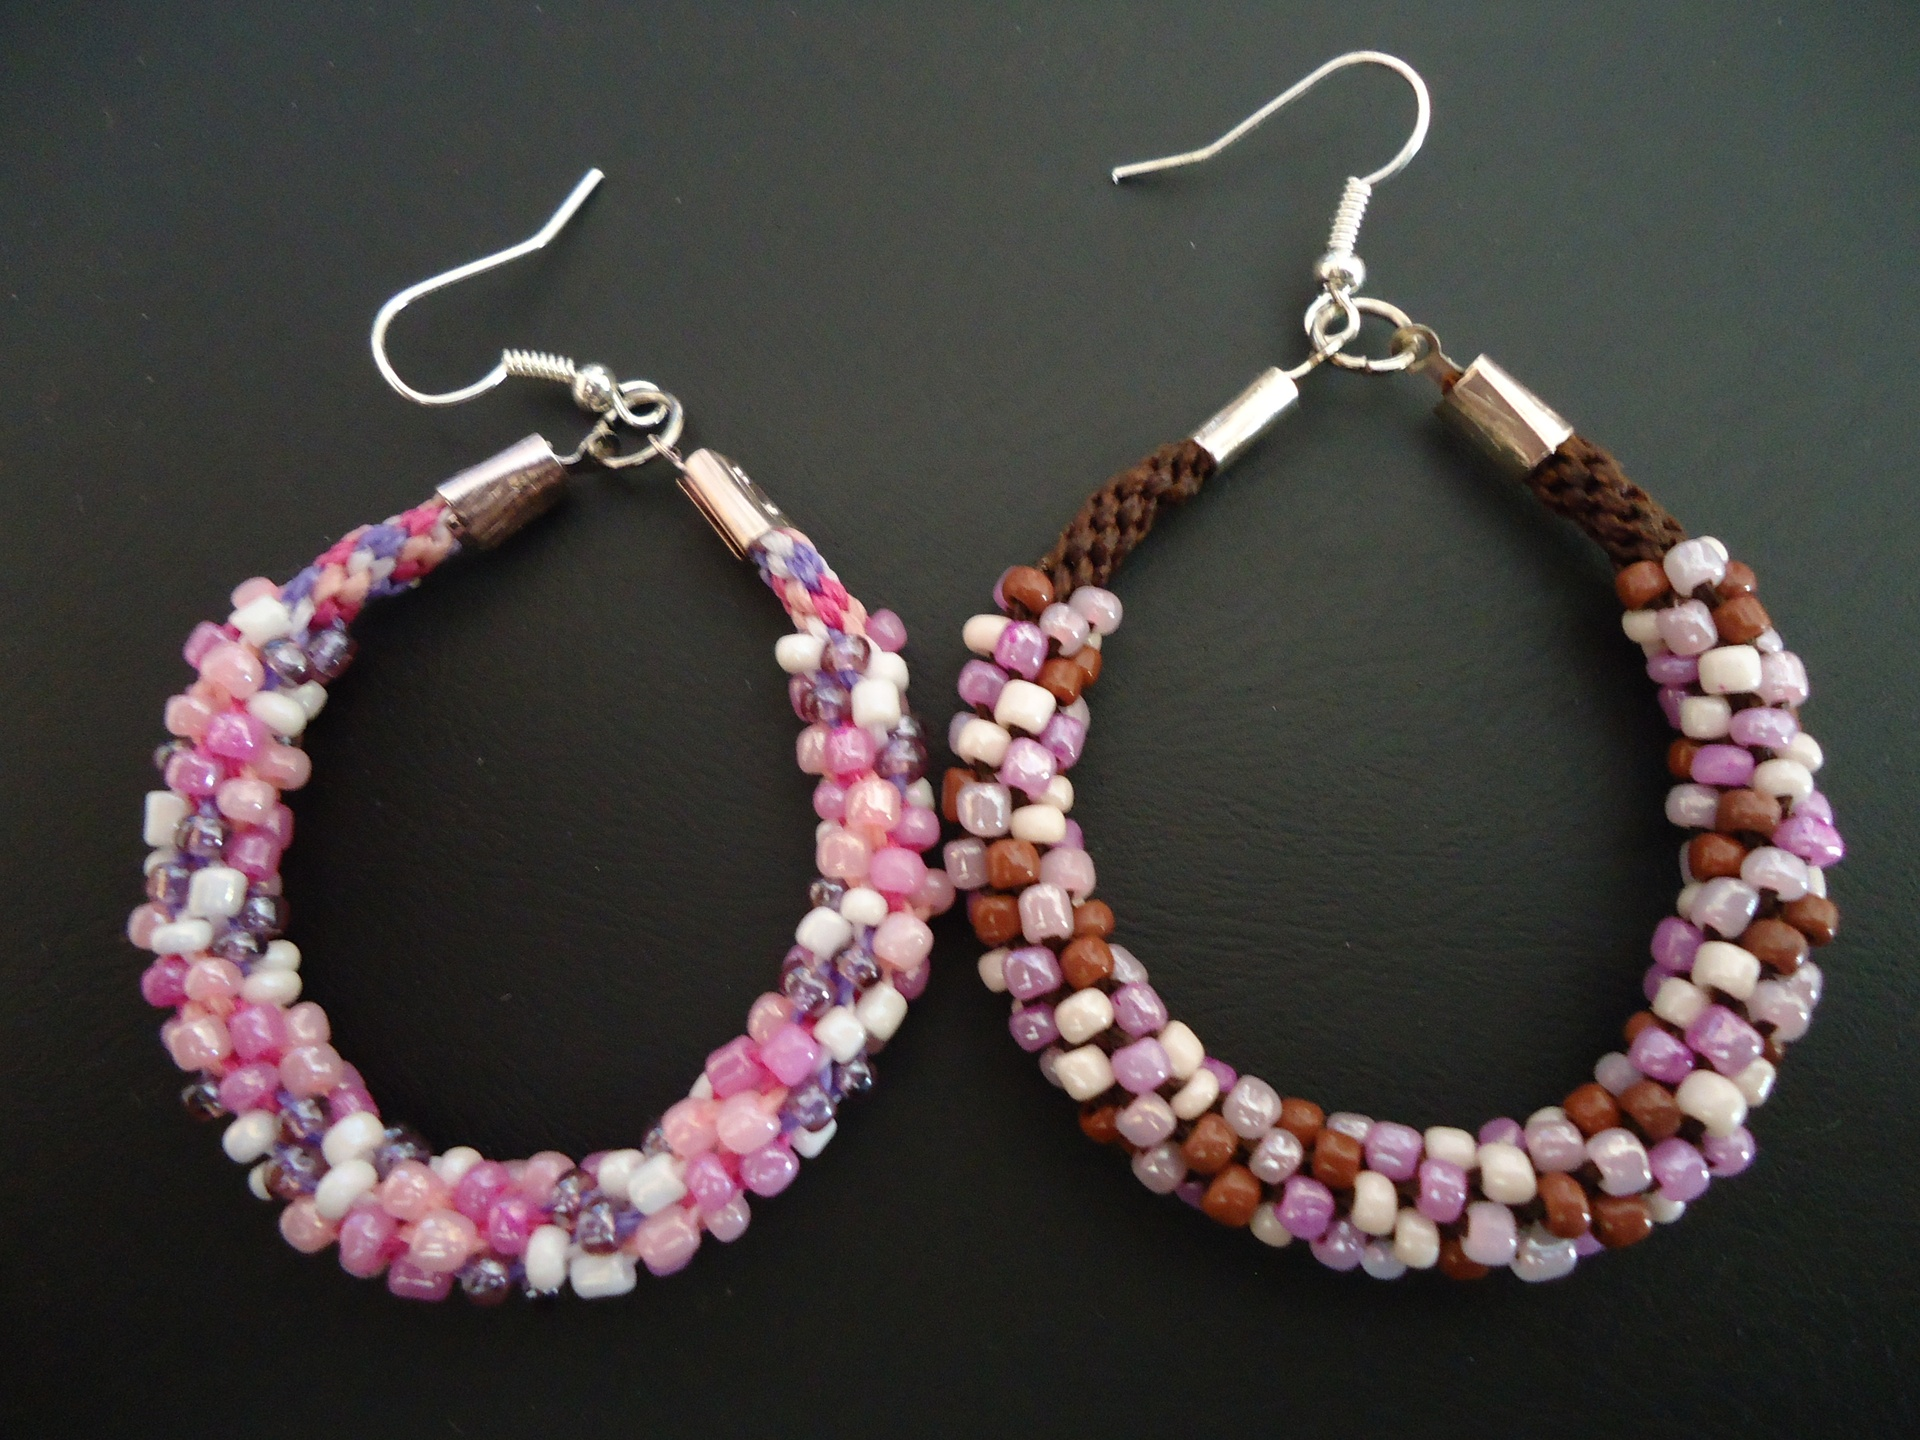 Kumihimo braided earrings (4 colors)